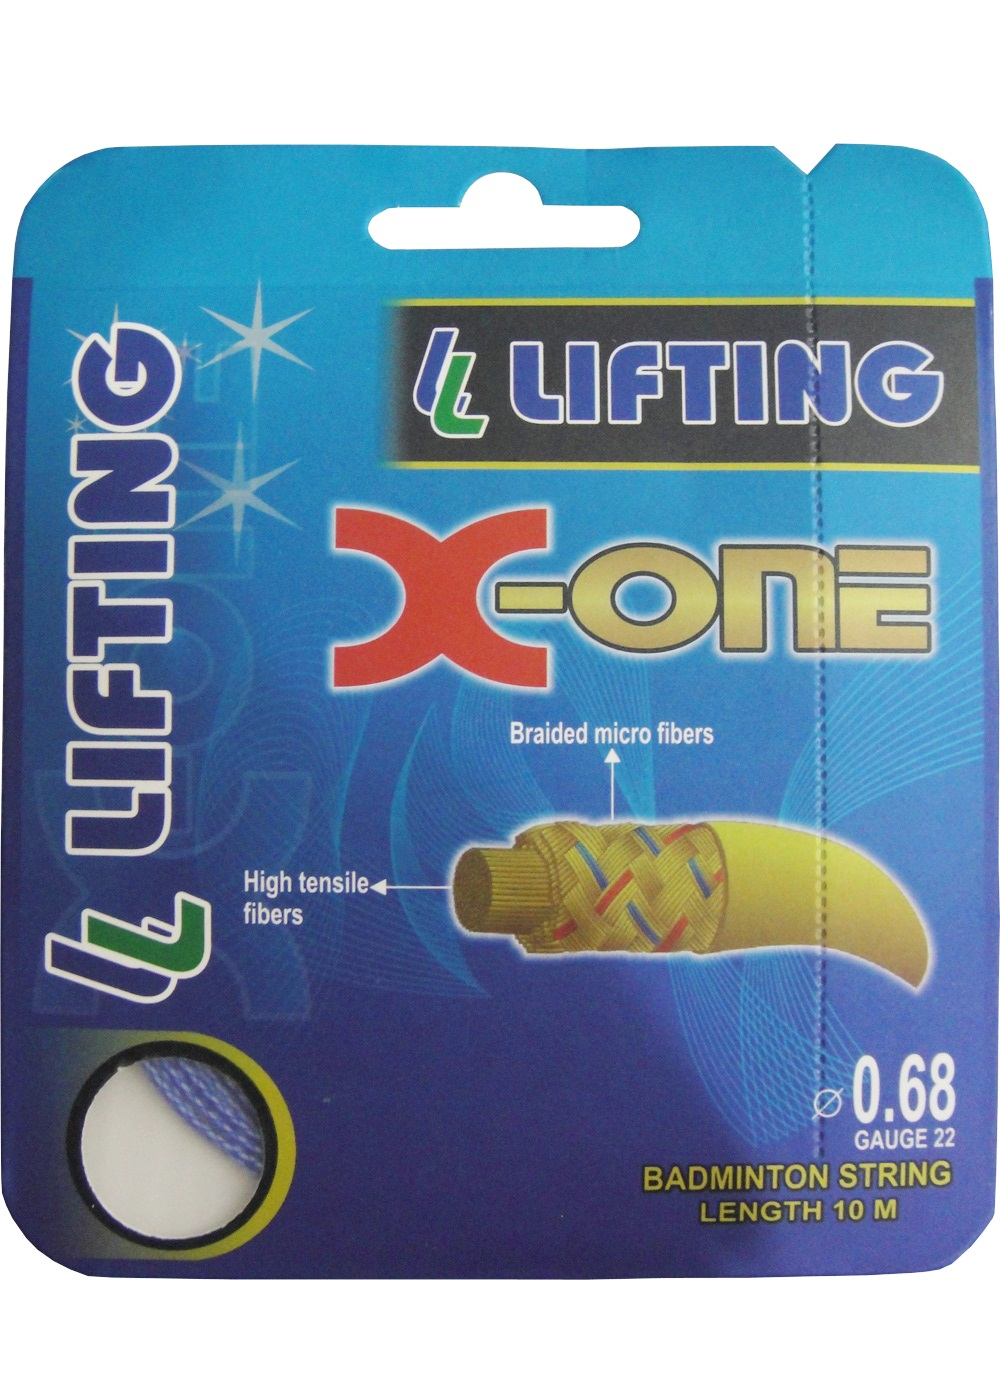 Lifting X-one